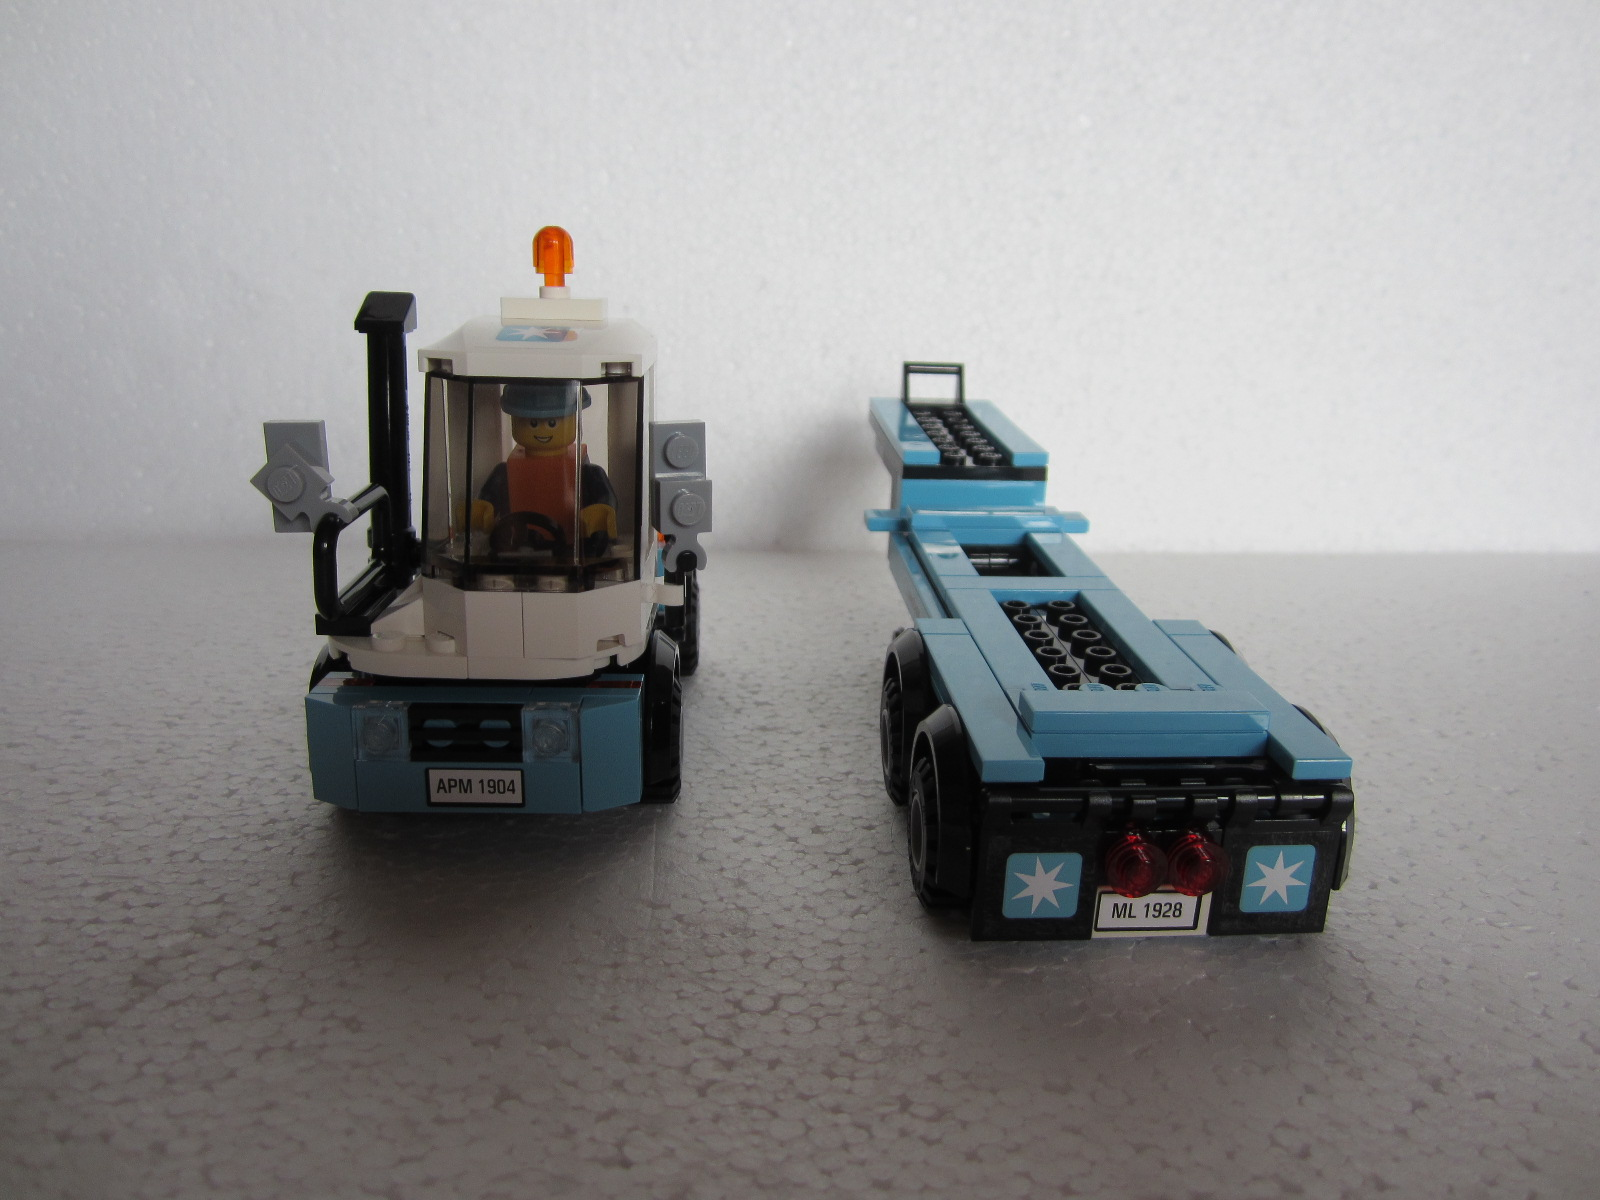 Favori Lego 10219 : le Train Maersk [partie 2] – Lego(R) by Alkinoos OF38